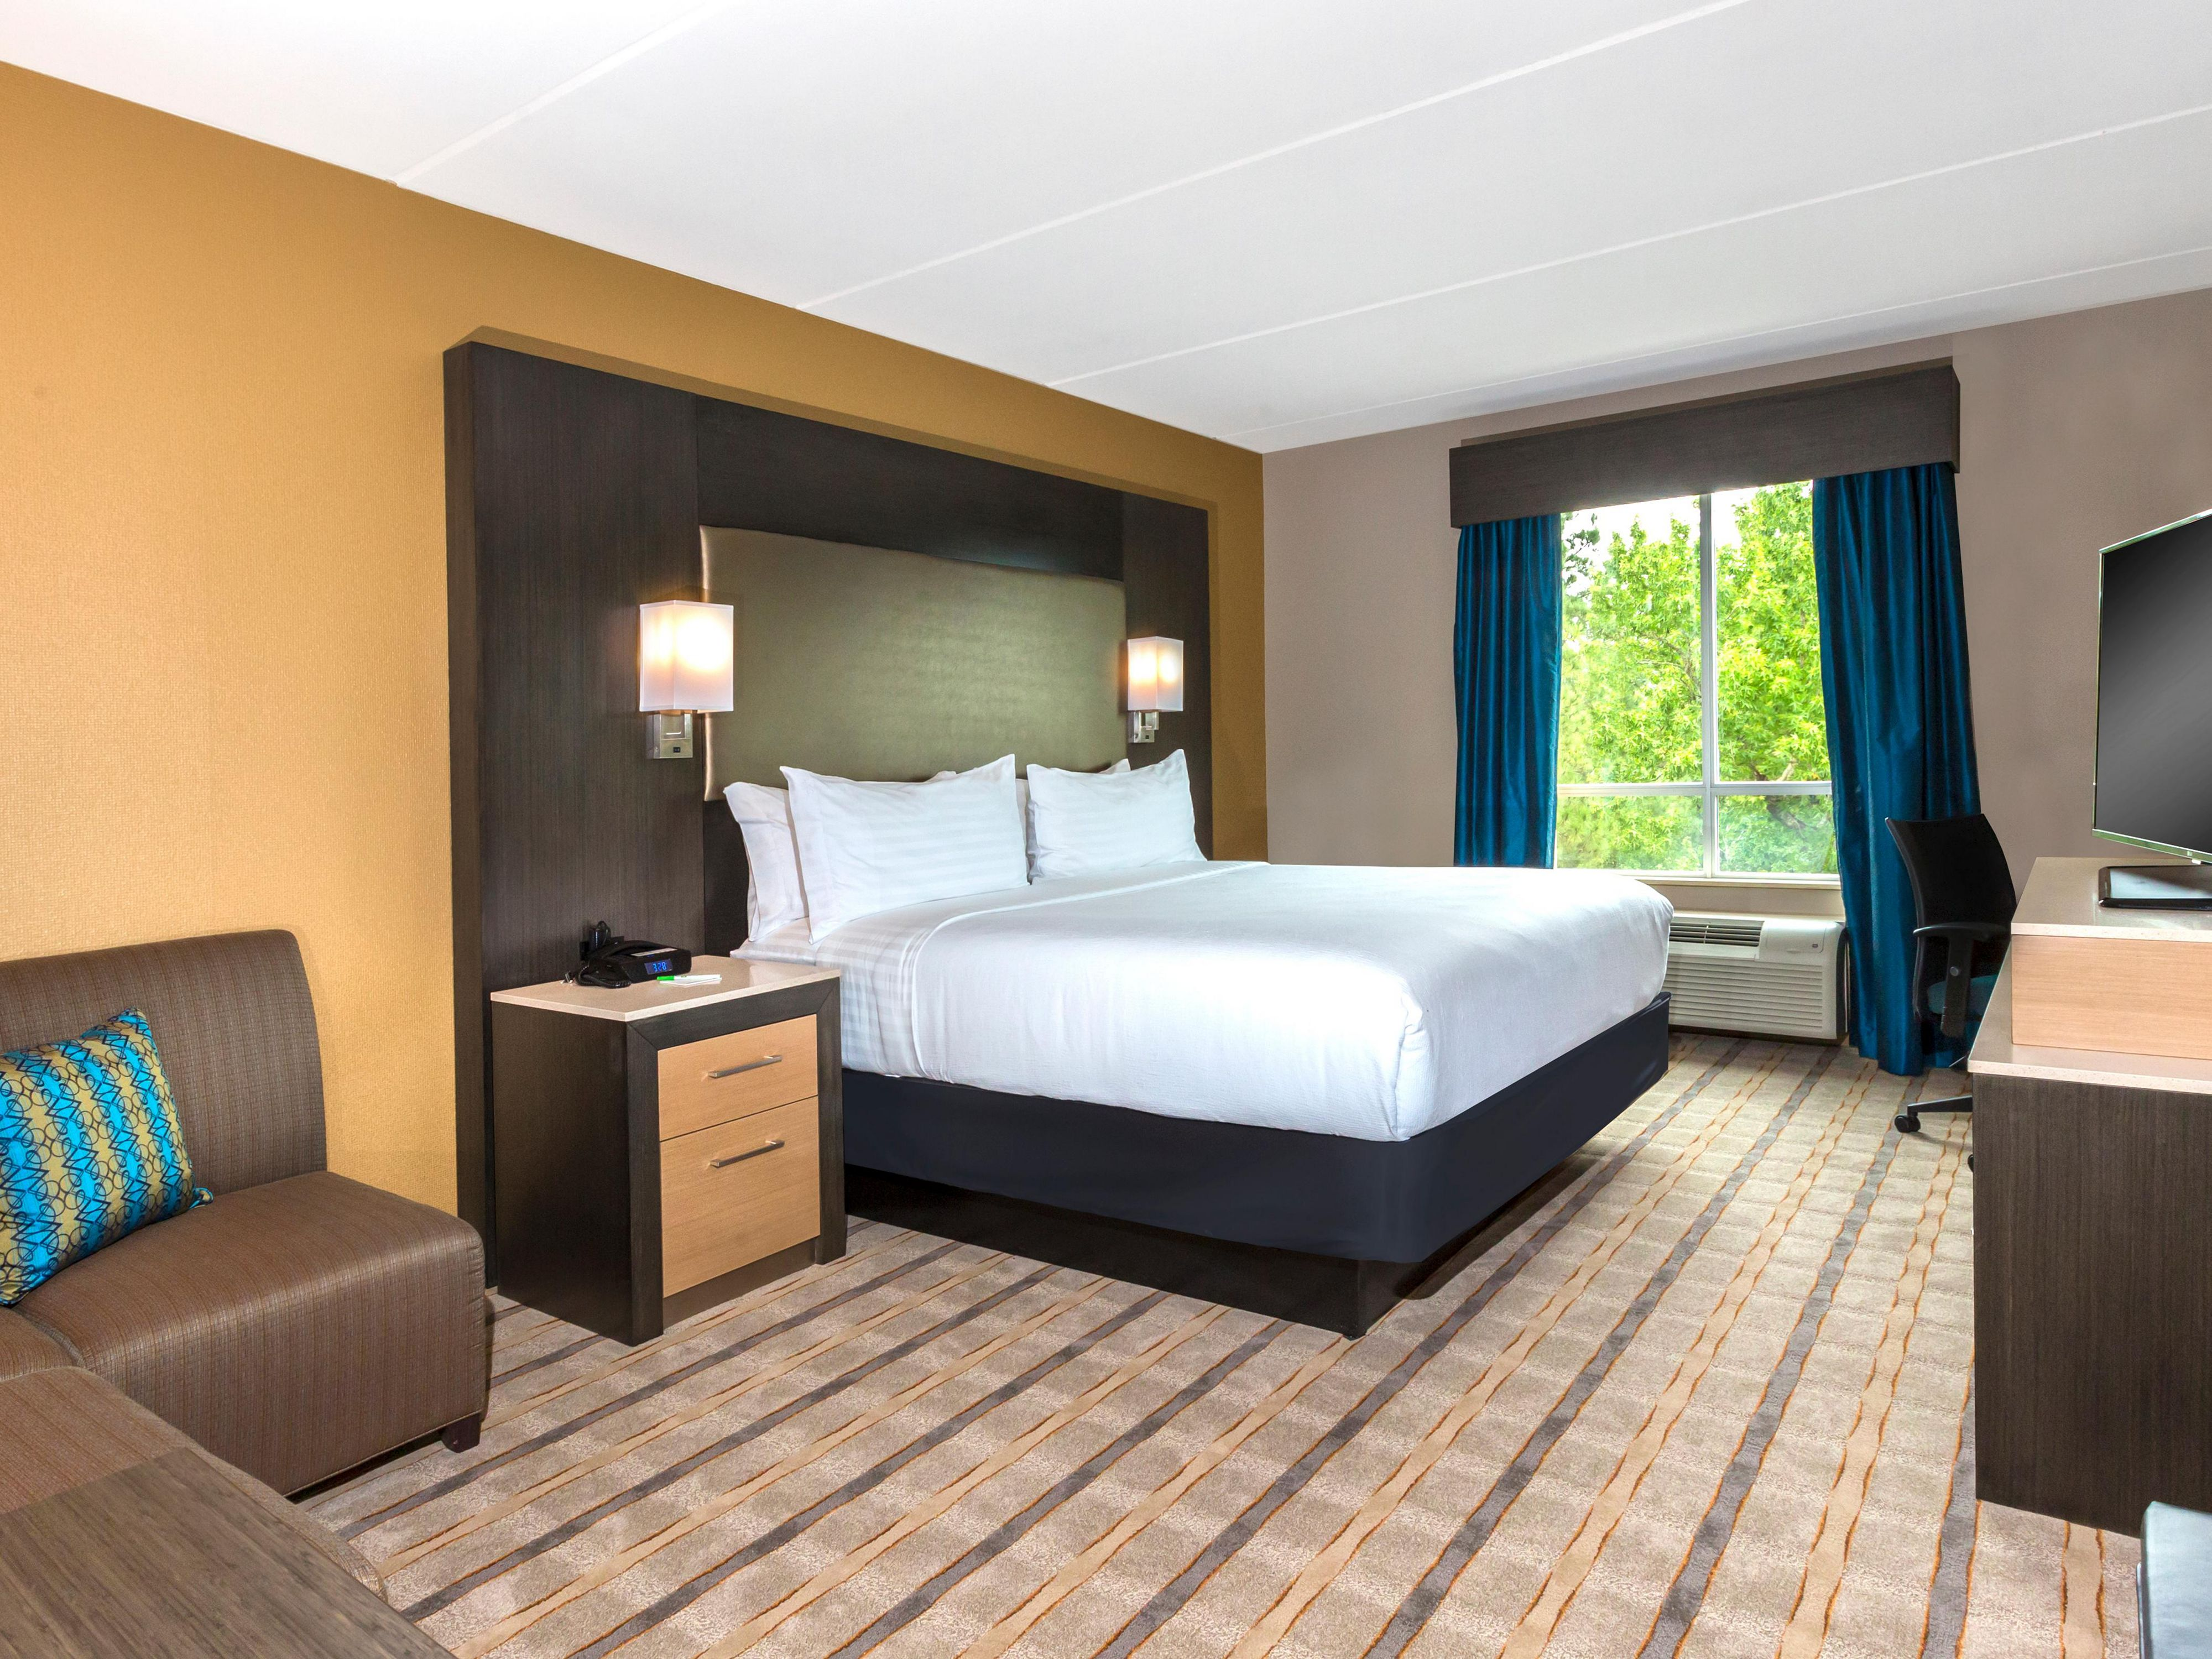 holiday-inn-hotel-and-suites-shenandoah-4690334064-4x3